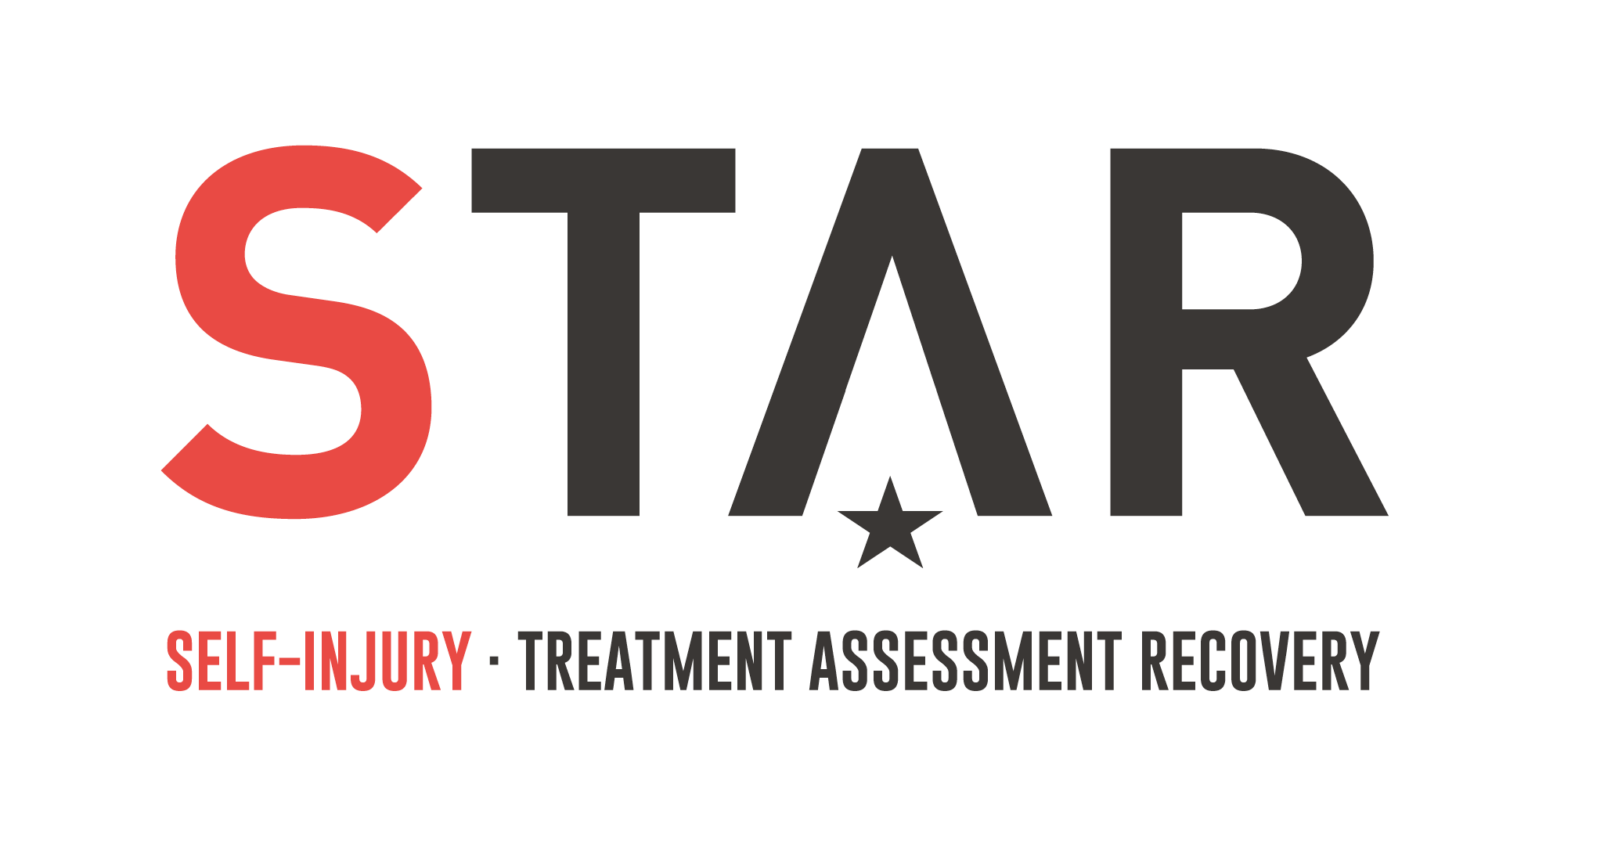 Logo: Star Self-Injury Treatment Assessment Recovery